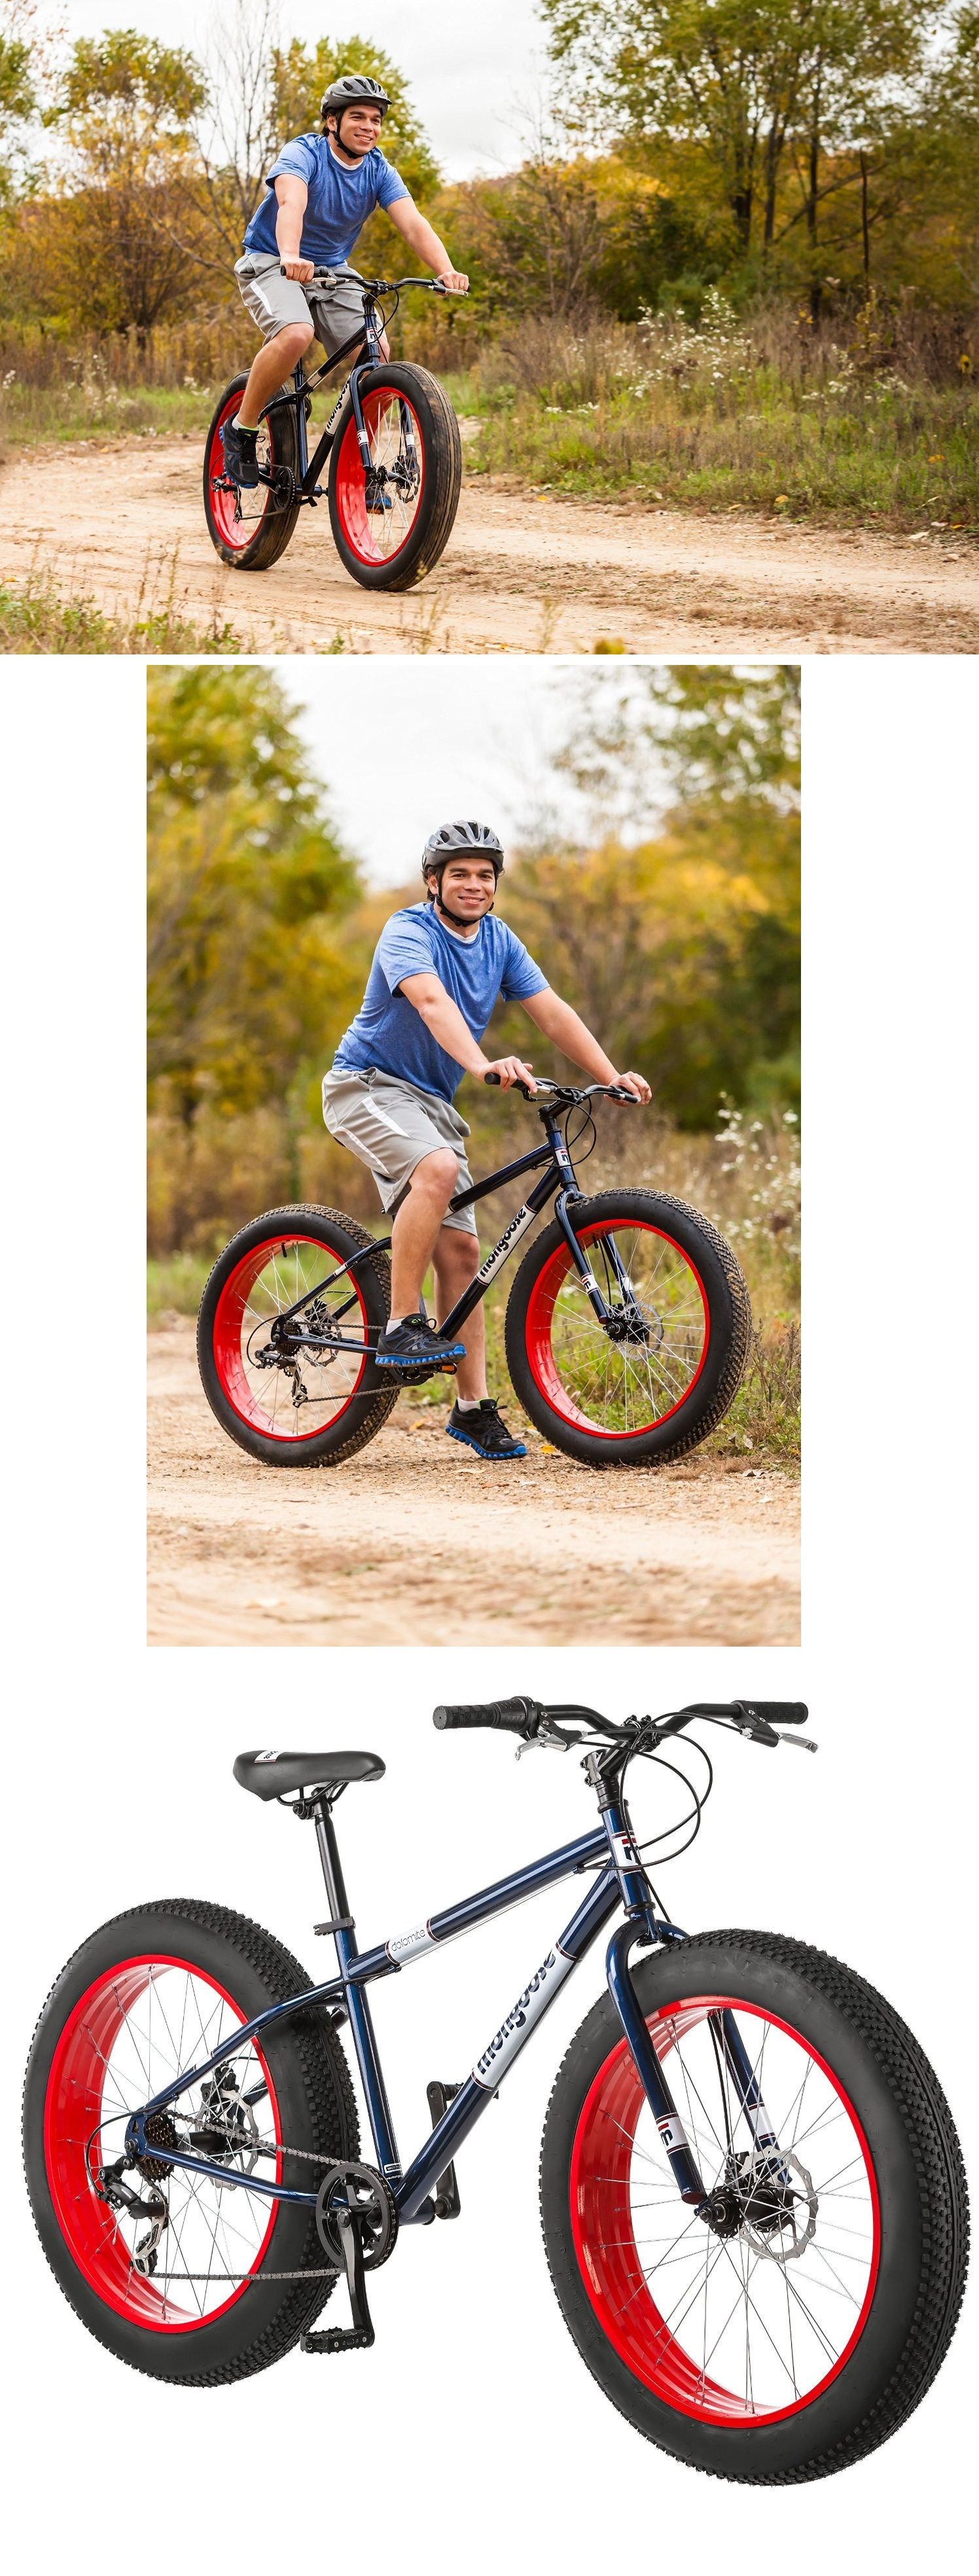 Is The Red Color Worth Extra Weight Dolomite Fat Boys Tire Cruiser Bike